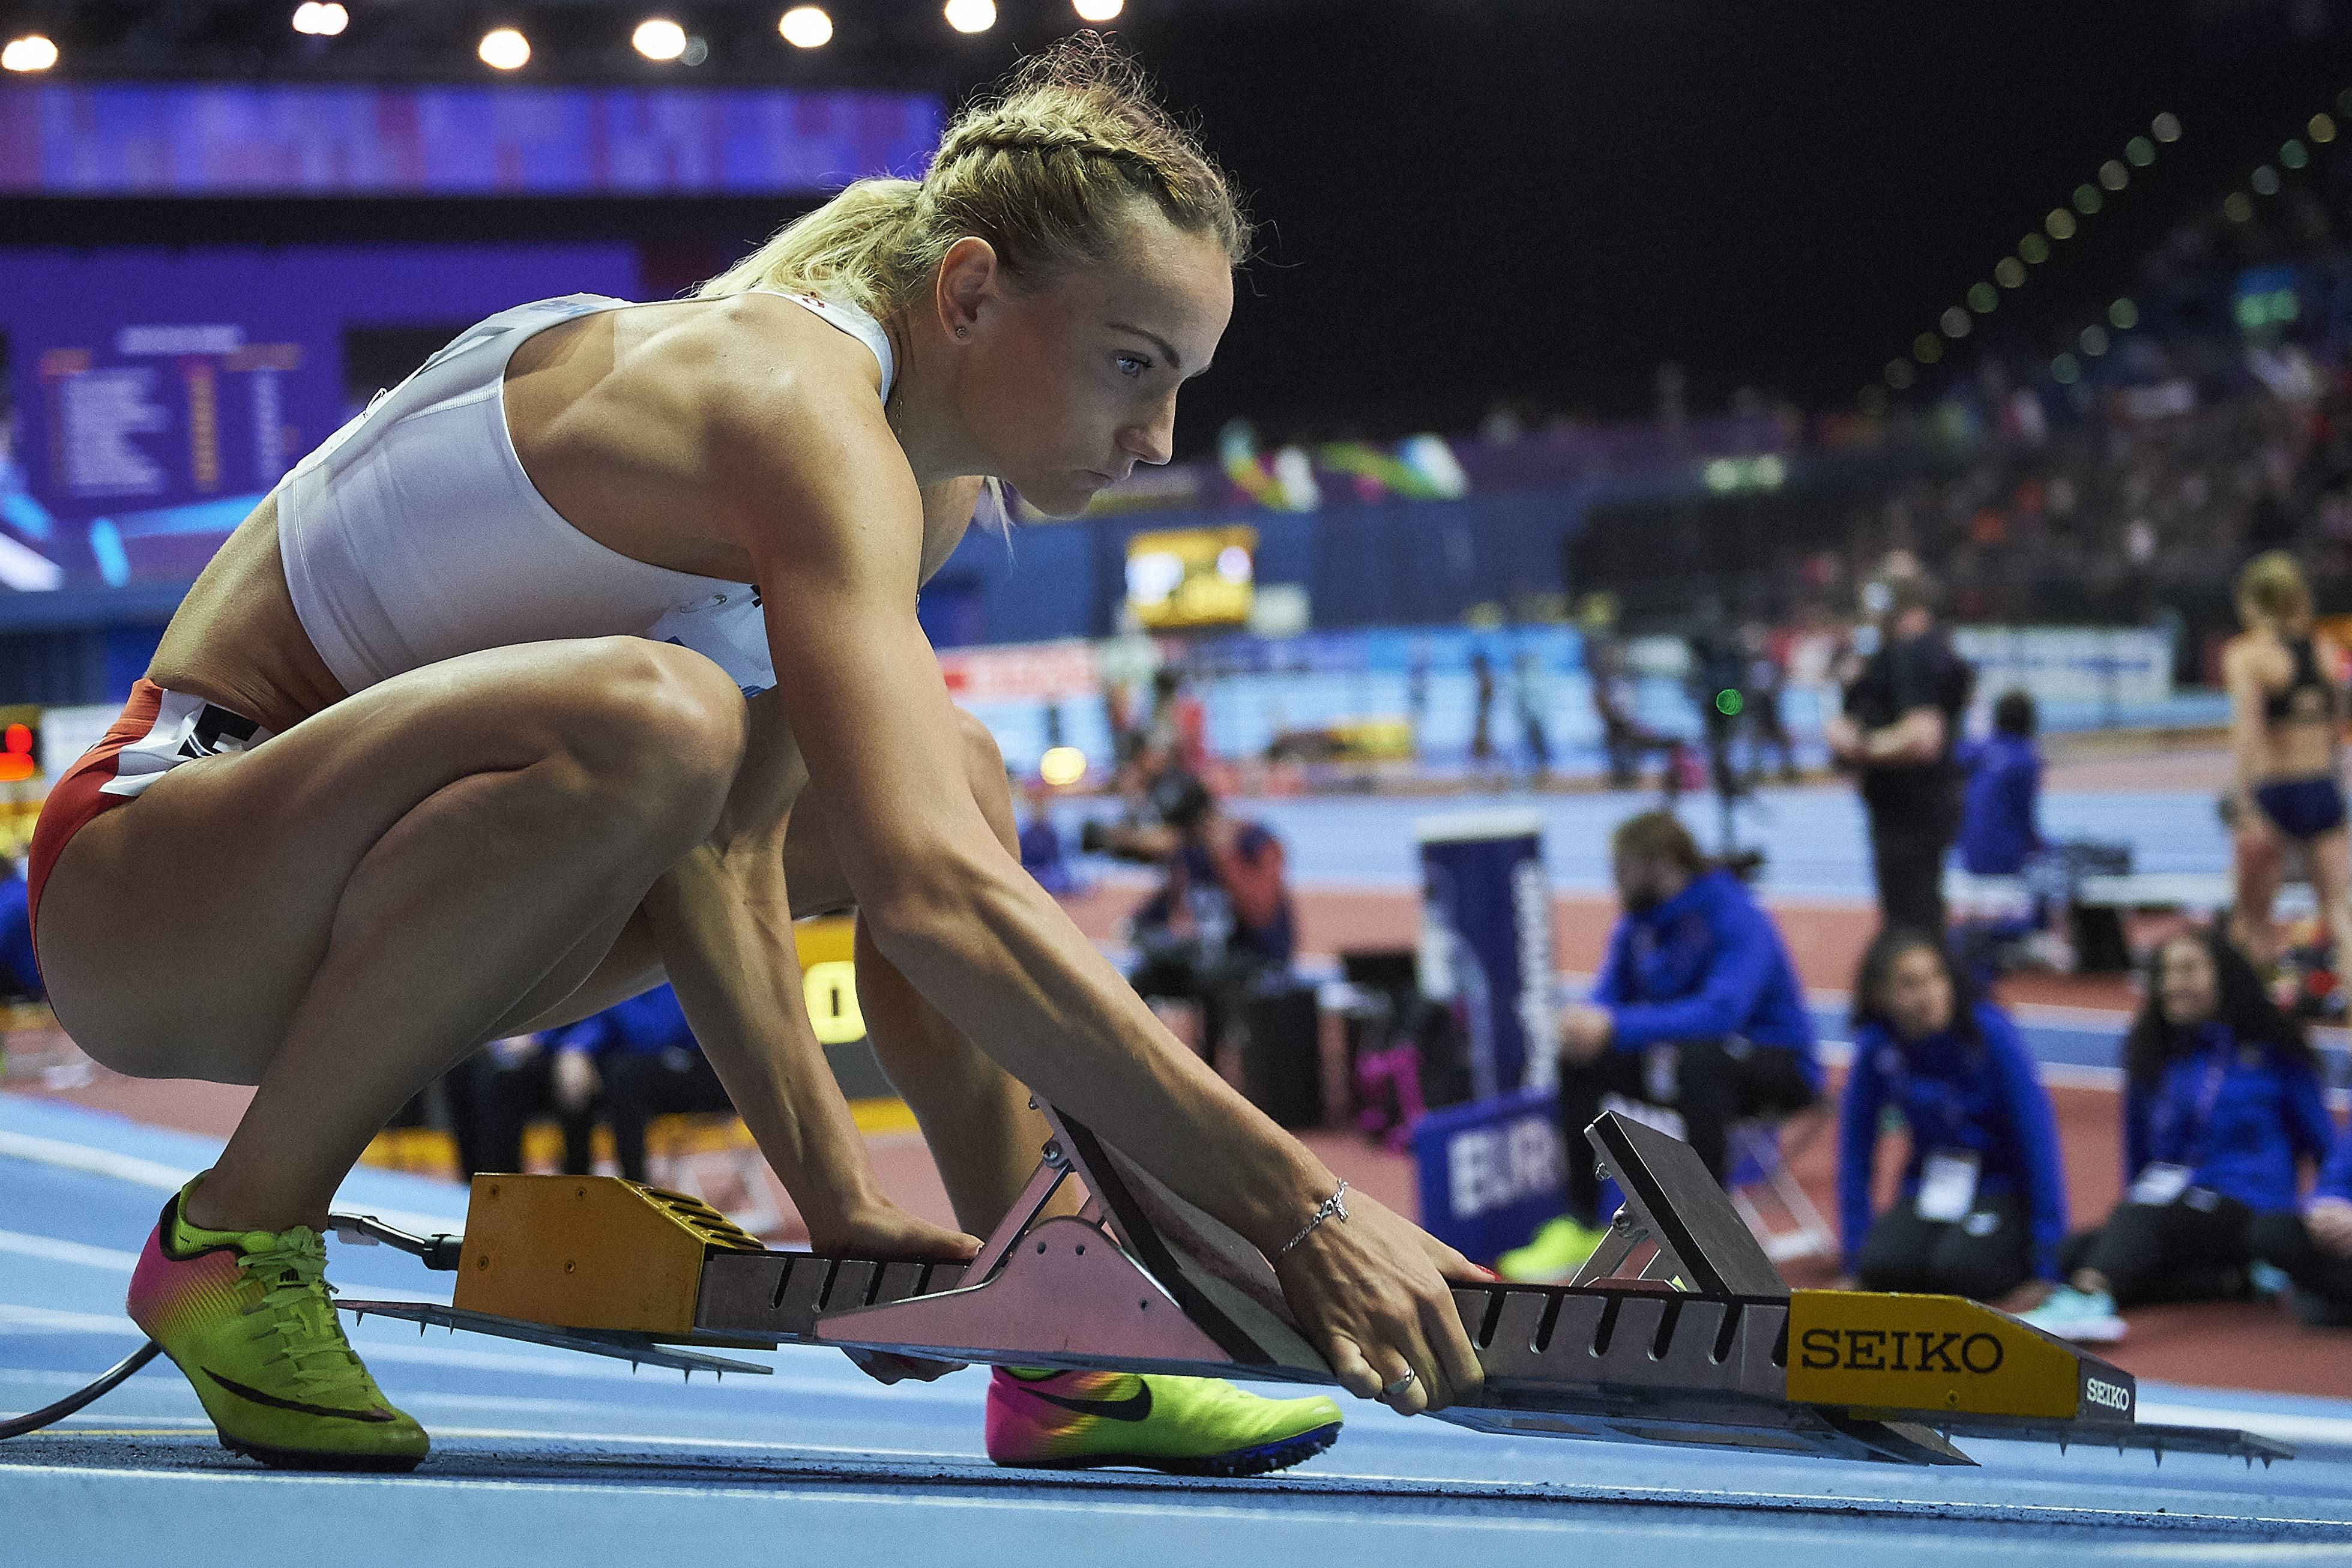 02.03.2018 BIRMINGHAM , WIELKA BRYTANIA , ARENA BIRMINGHAM , IAAF HALOWE MISTRZOSTWA SWIATA W LEKKIEJ ATLETYCE BIRMINGHAM 2018 ( IAAF WORLD INDOOR CHAMPIONSHIPS BIRMINGHAM 2018 ) 400 M KOBIET NZ. JUSTYNA SWIETY - ERSTERIC FOTO RADOSLAW JOZWIAK / CYFRASPORT / NEWSPIX.PL --- Newspix.pl *** Local Caption *** www.newspix.pl mail us: info@newspix.pl call us: 0048 022 23 22 222 --- Polish Picture Agency by Ringier Axel Springer Poland